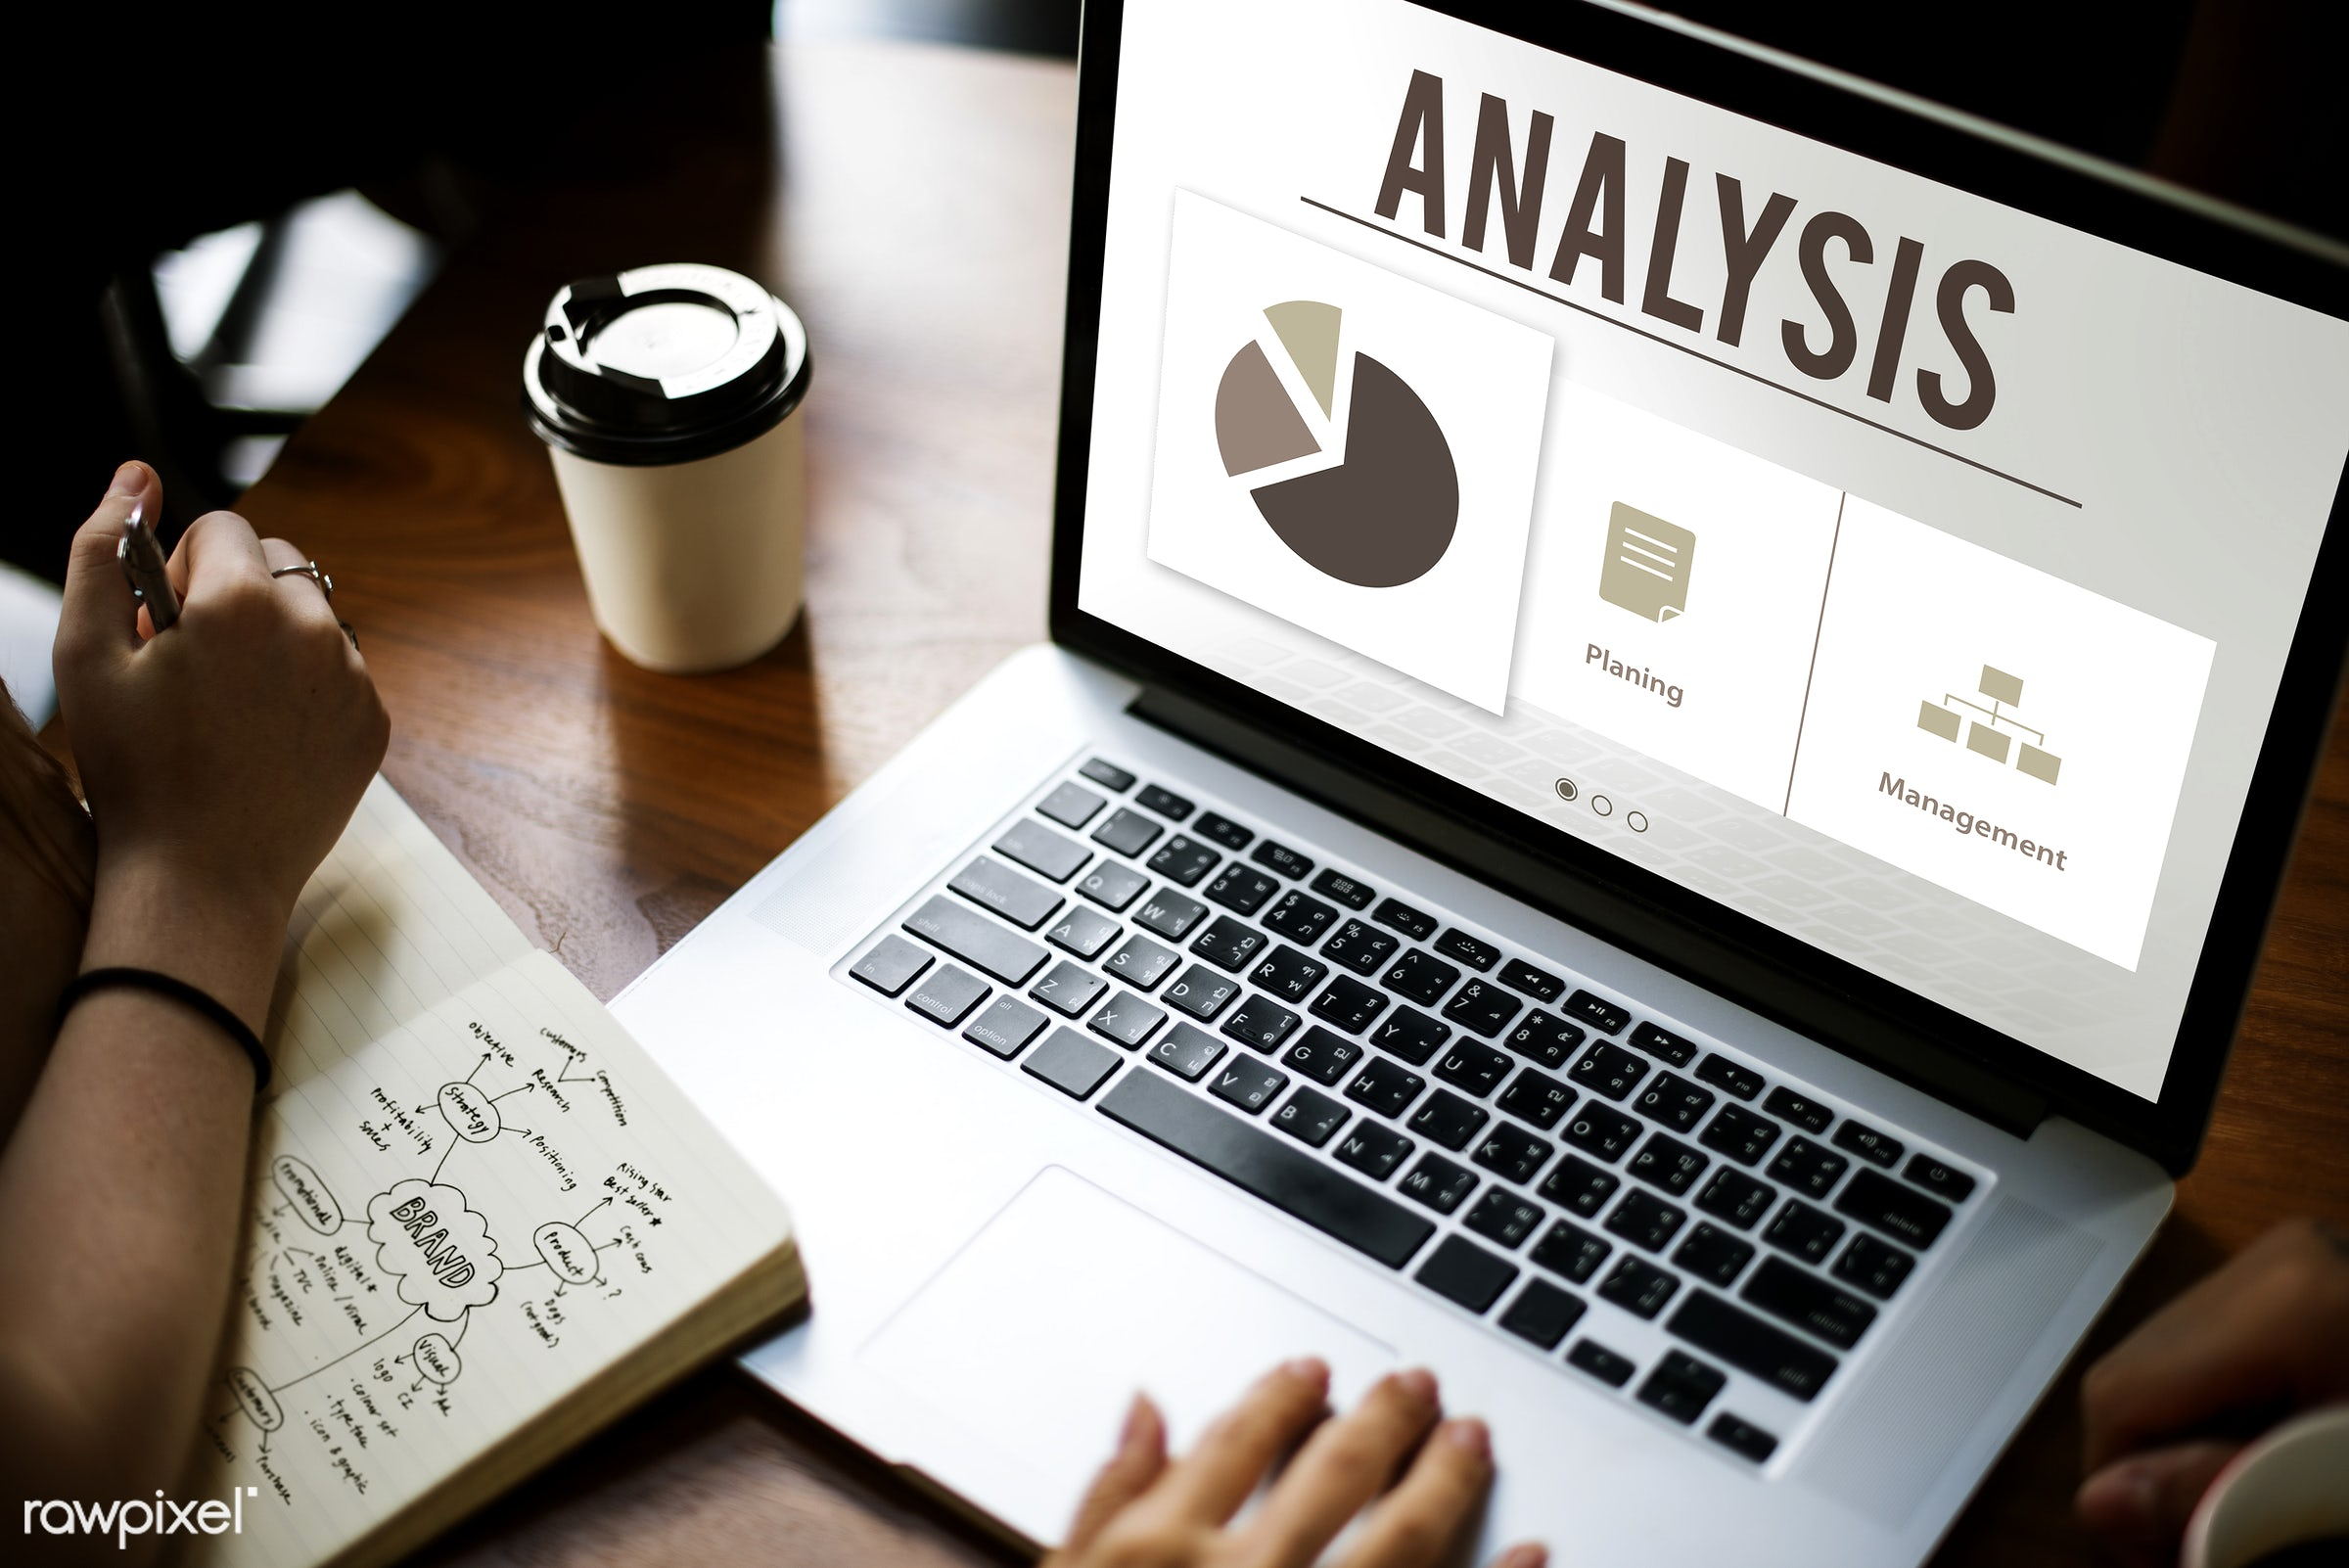 analysis, assets, bank, browsing, business, cash, chart, coffee cup, currency, device, digital, digital device, finance,...